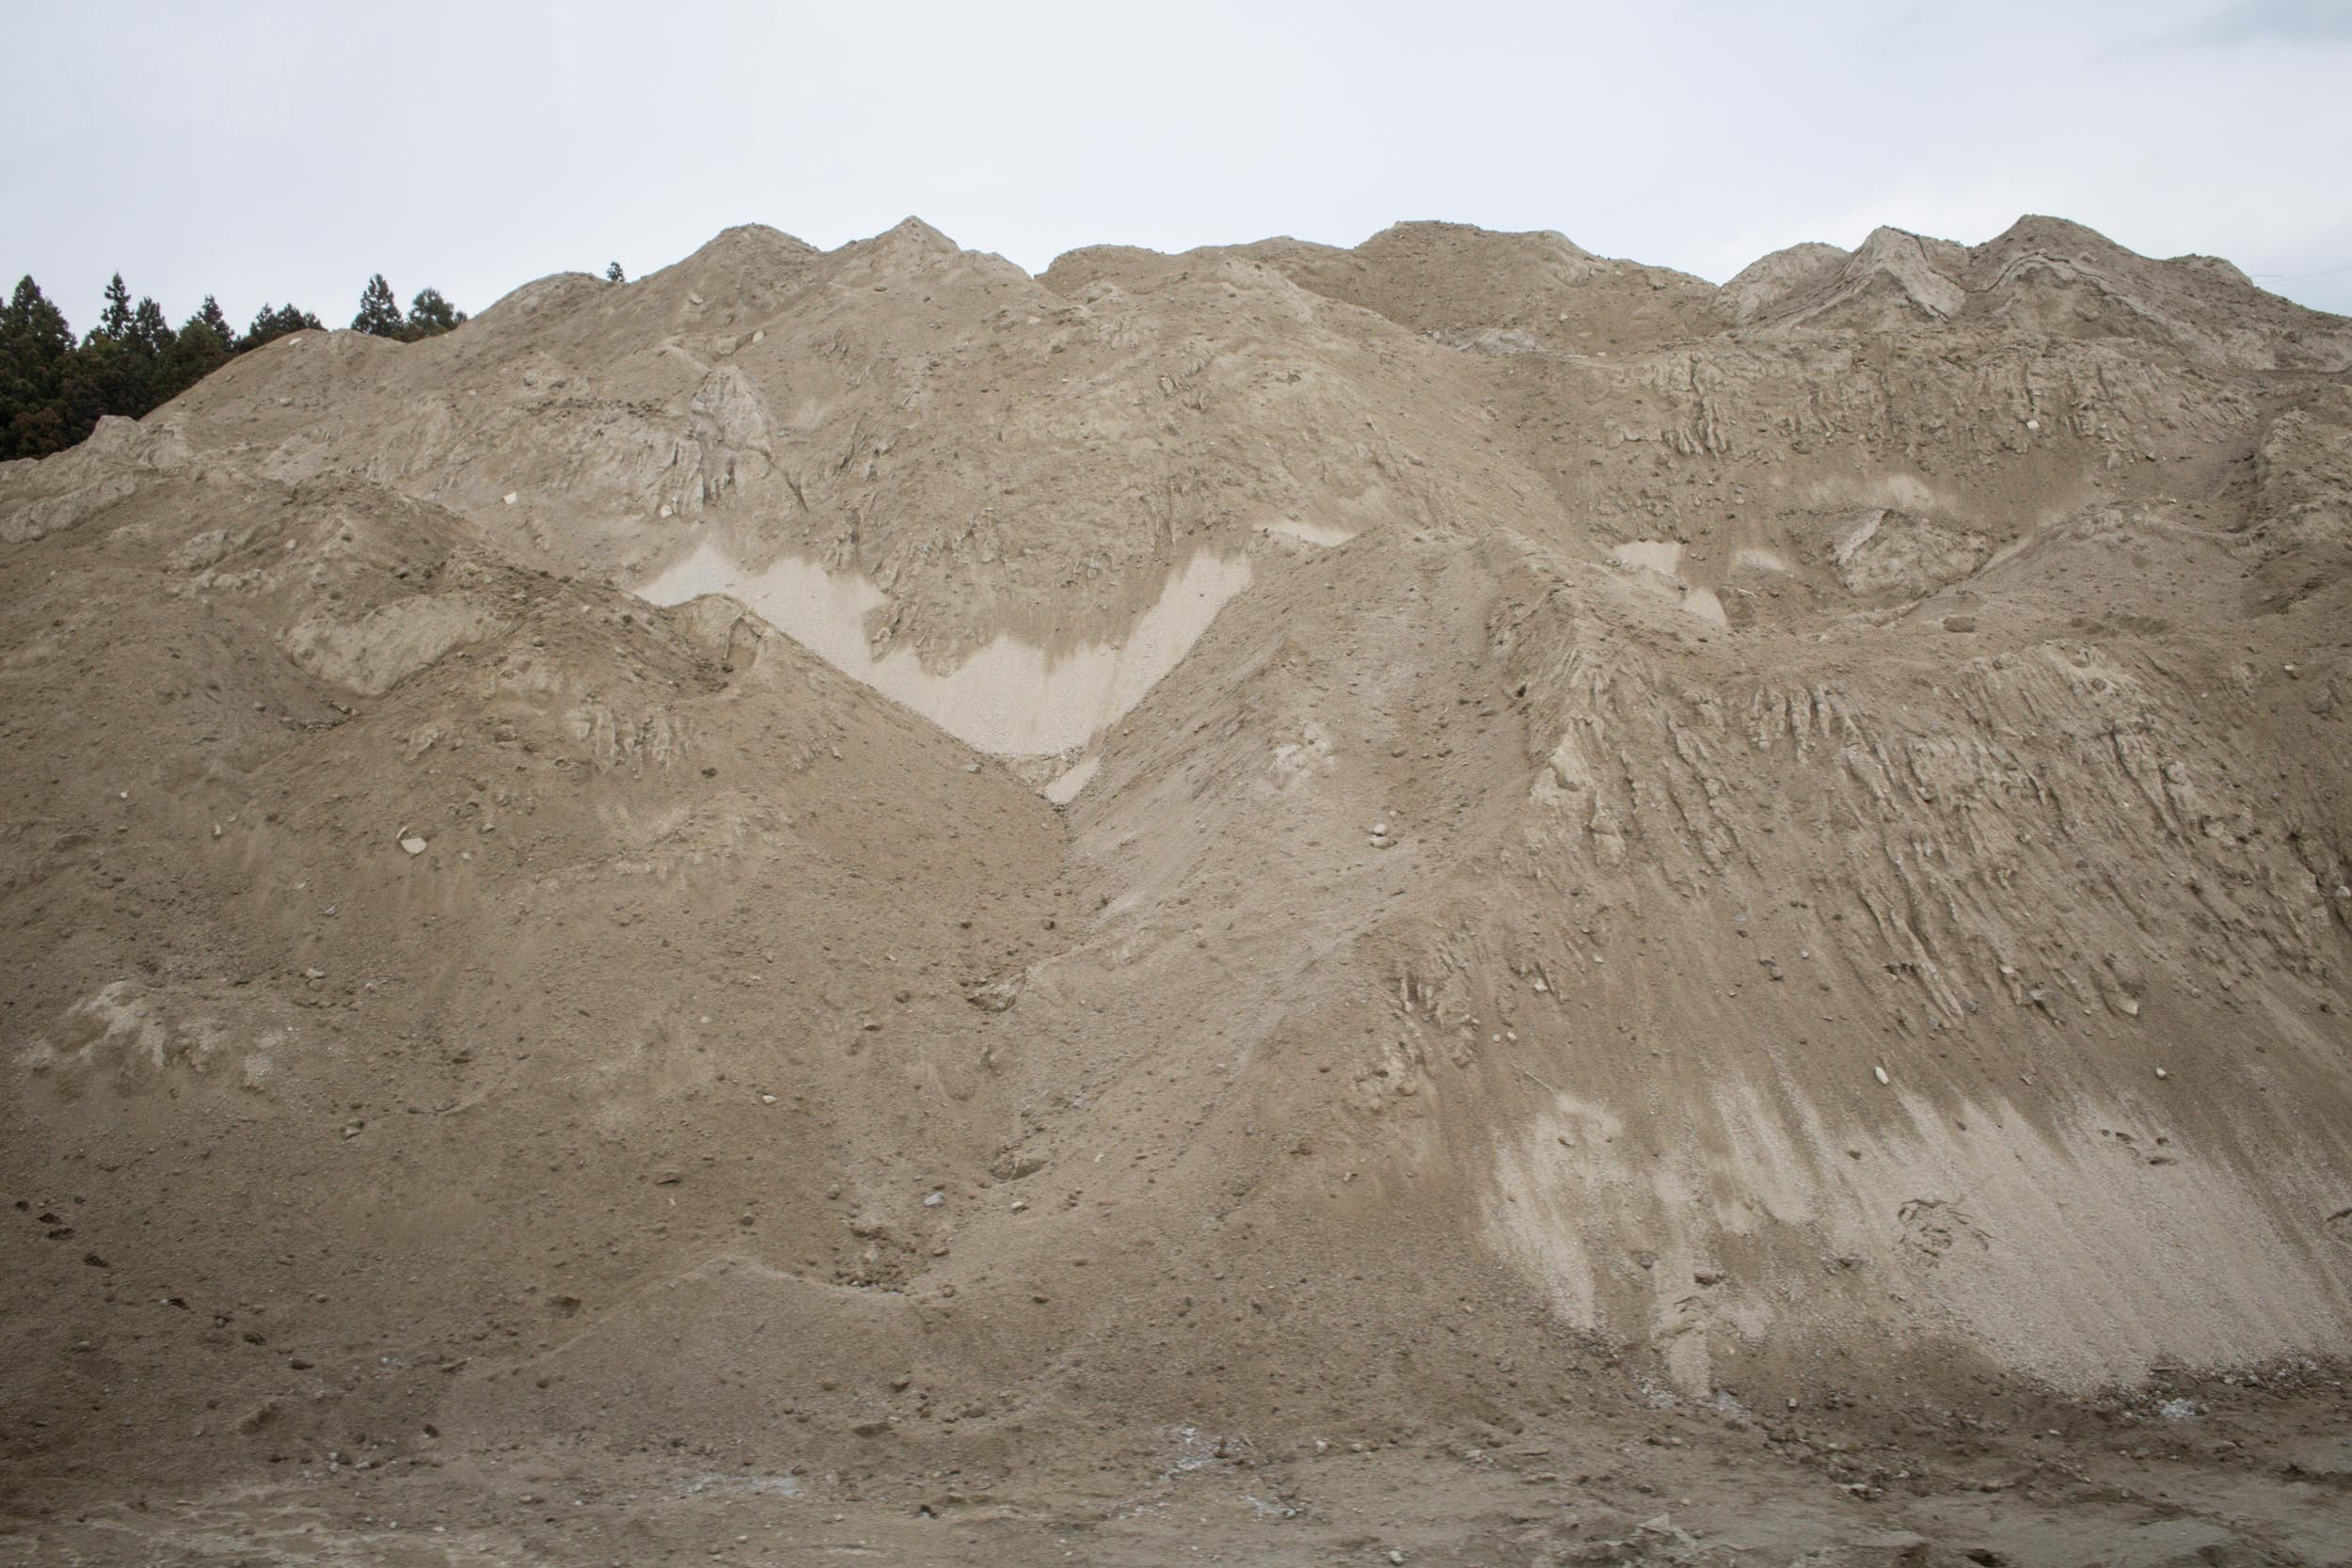 Heaps of sand kept to be transported to replace the soil in contaminated fields. Sandoil is brought by mining the mountains from regions which are not contaminated